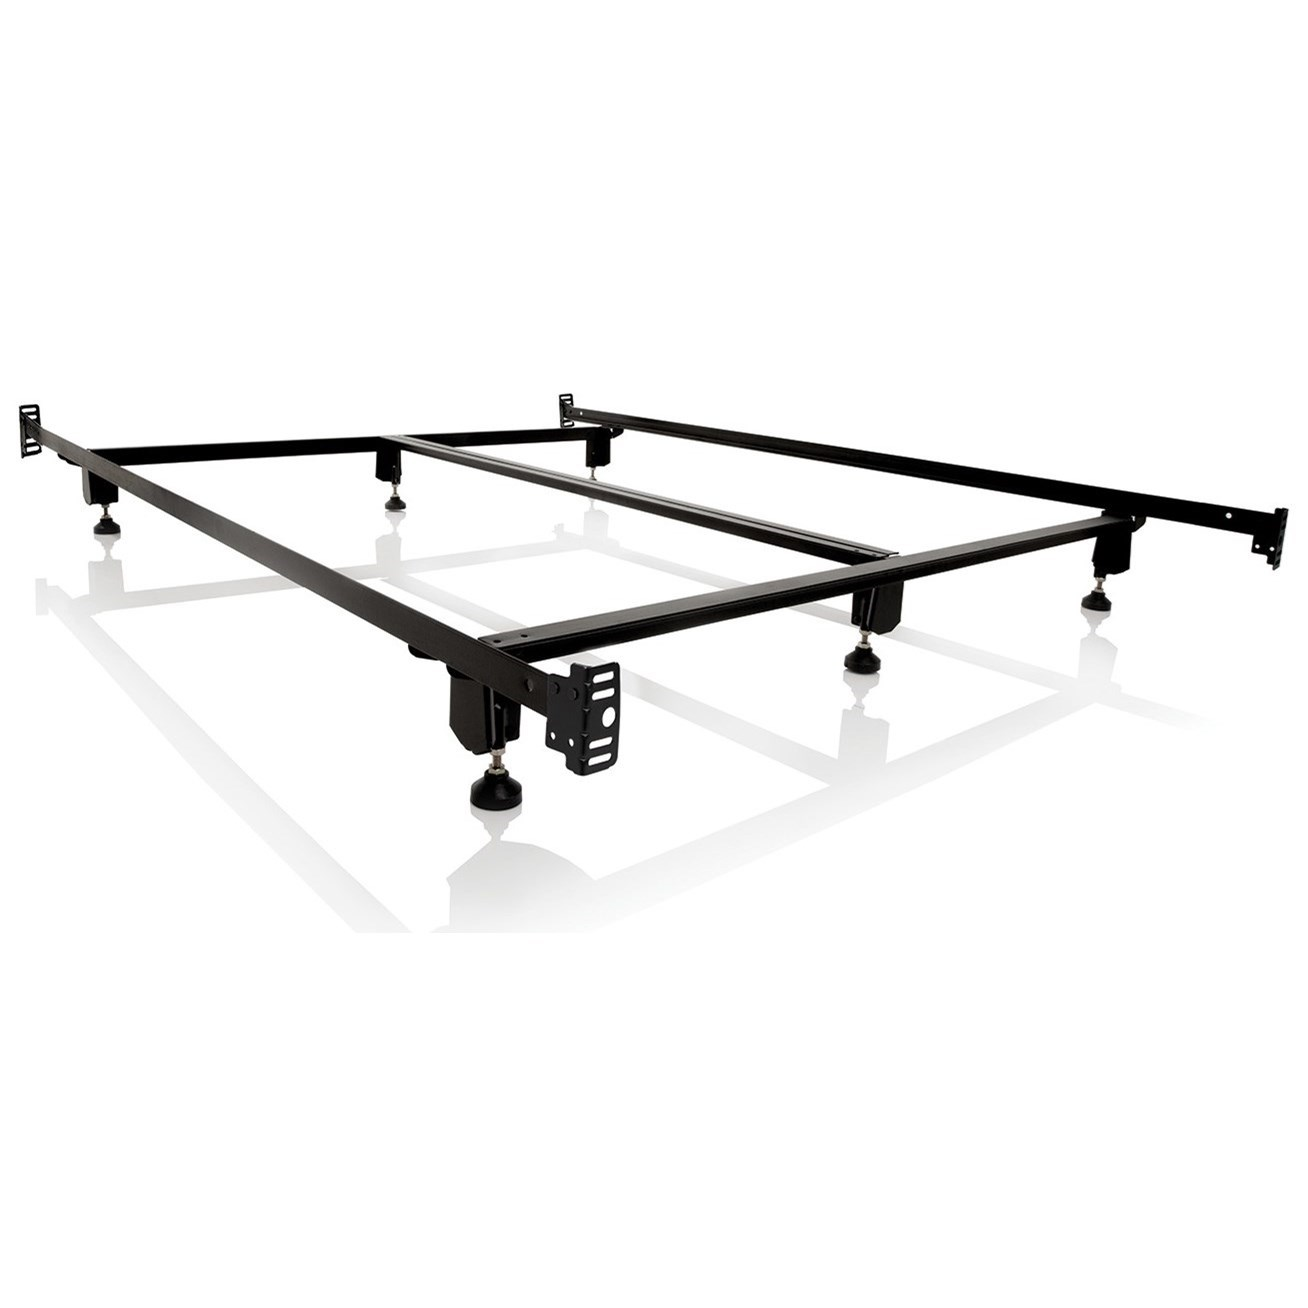 Steelock Full Steelock Bolt-On Bed Frame by Malouf at Standard Furniture